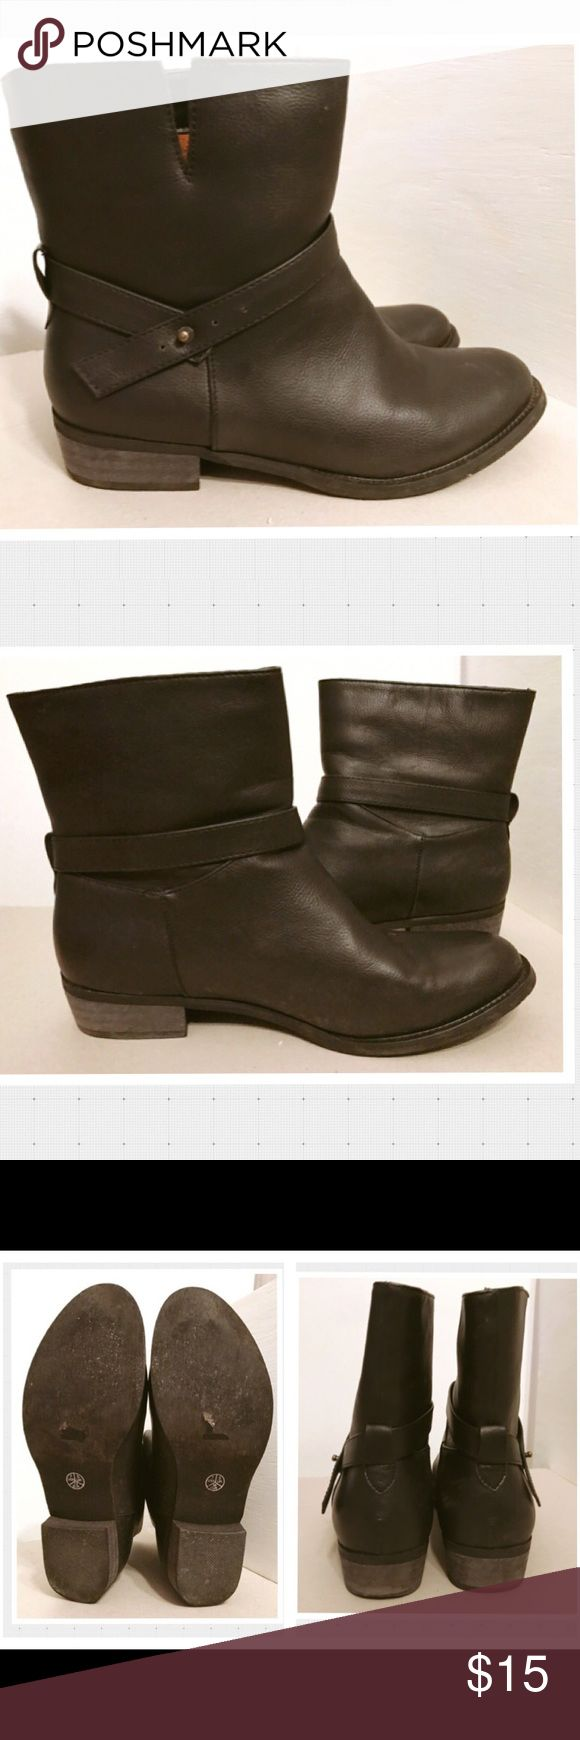 SALE! Yuzè London Black Moto Ankle Boots Size 7 Yuzè London Black Moto Ankle Boots Size 7. Pleather. Gently used. Shows no sign of wear. Please refer to pics for details. No REASONABLE offer declined! Thanks for looking! Yuzè London Shoes Combat & Moto Boots